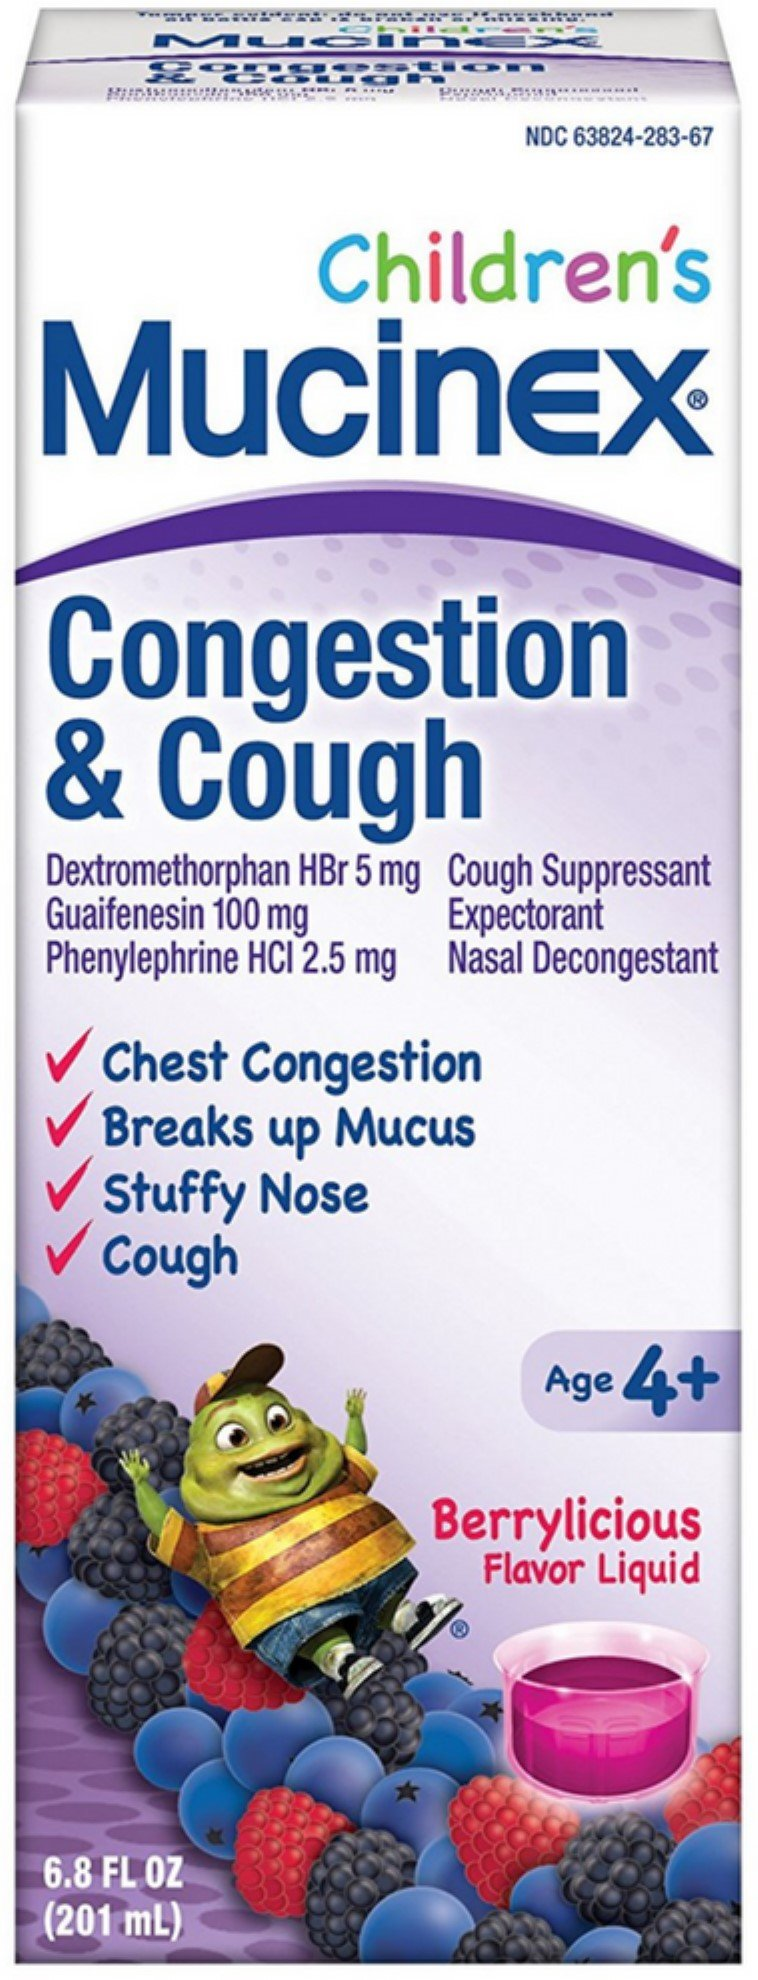 Mucinex Children's Congestion and Cough Liquid, Berrylicious Flavor, 6.8 oz (Pack of 9) by Mucinex